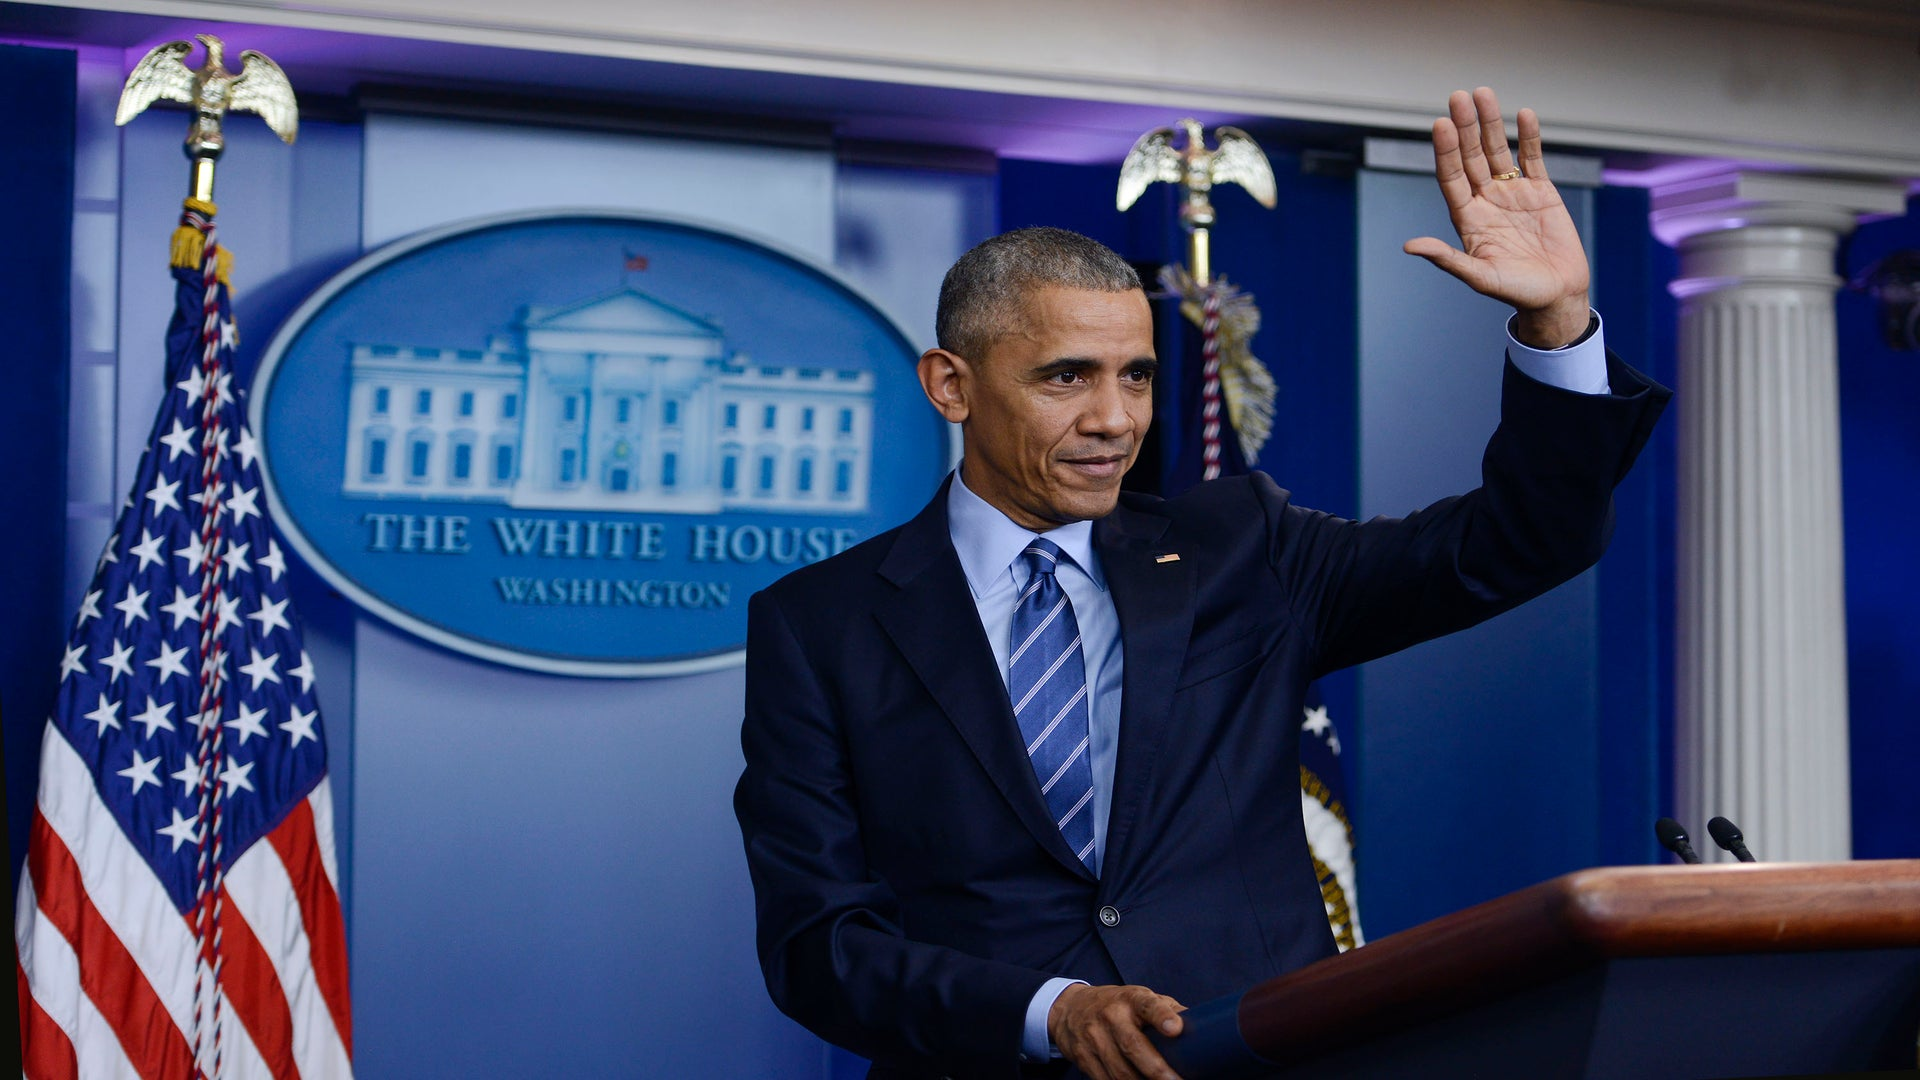 ≡Essays on Barack Obama. Free Examples of Research Paper Topics, Titles GradesFixer